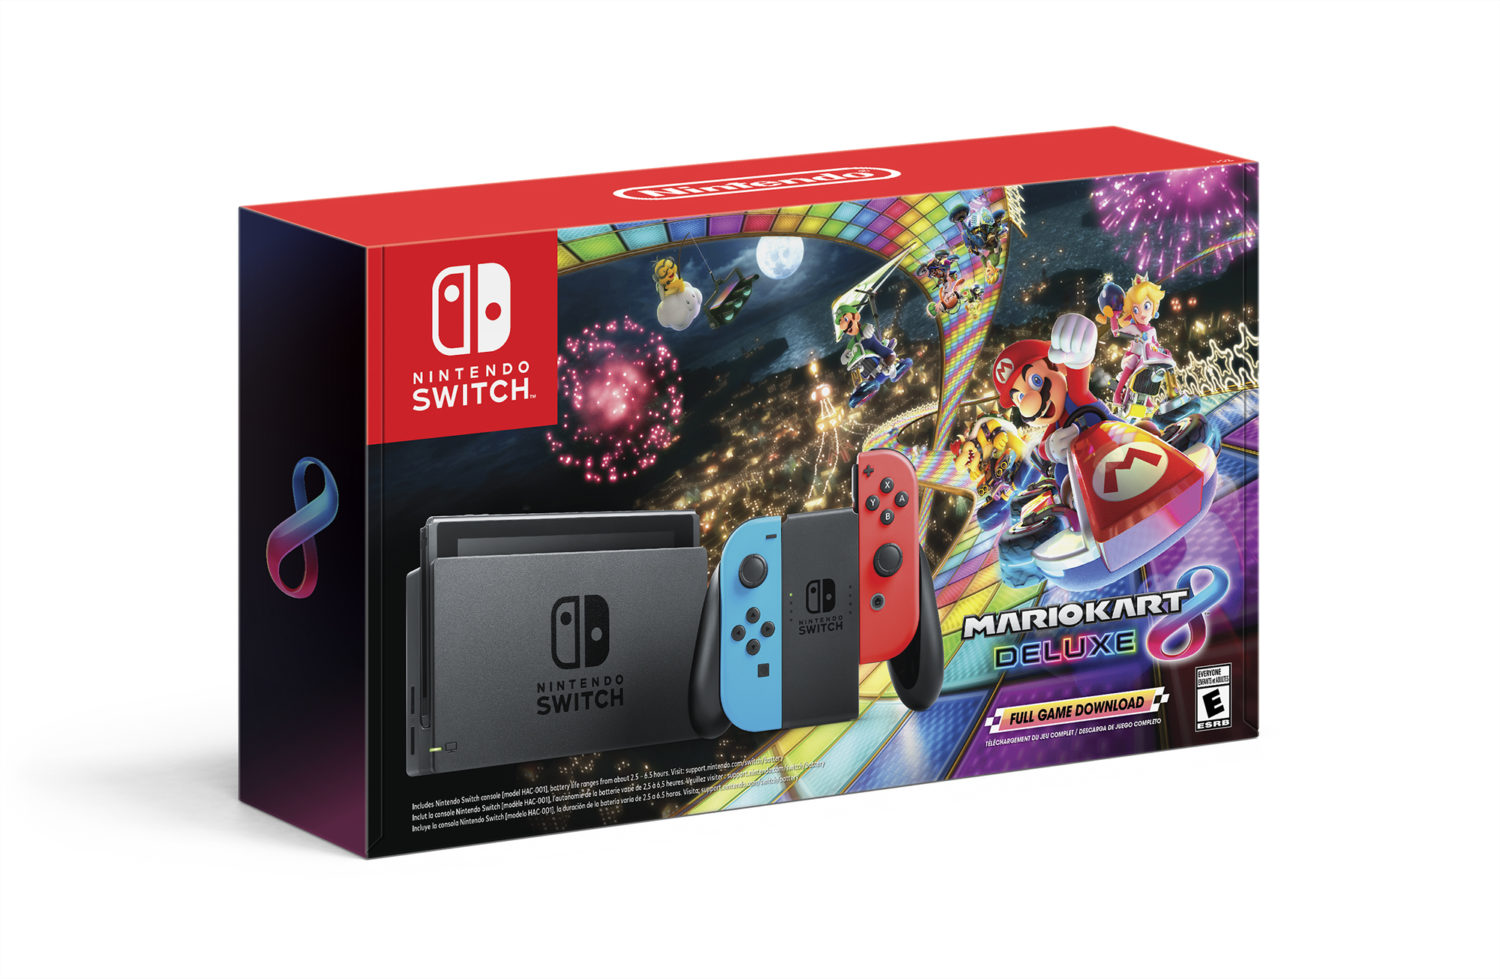 Nintendo Switch - Mario Kart 8 bundle - Black Friday